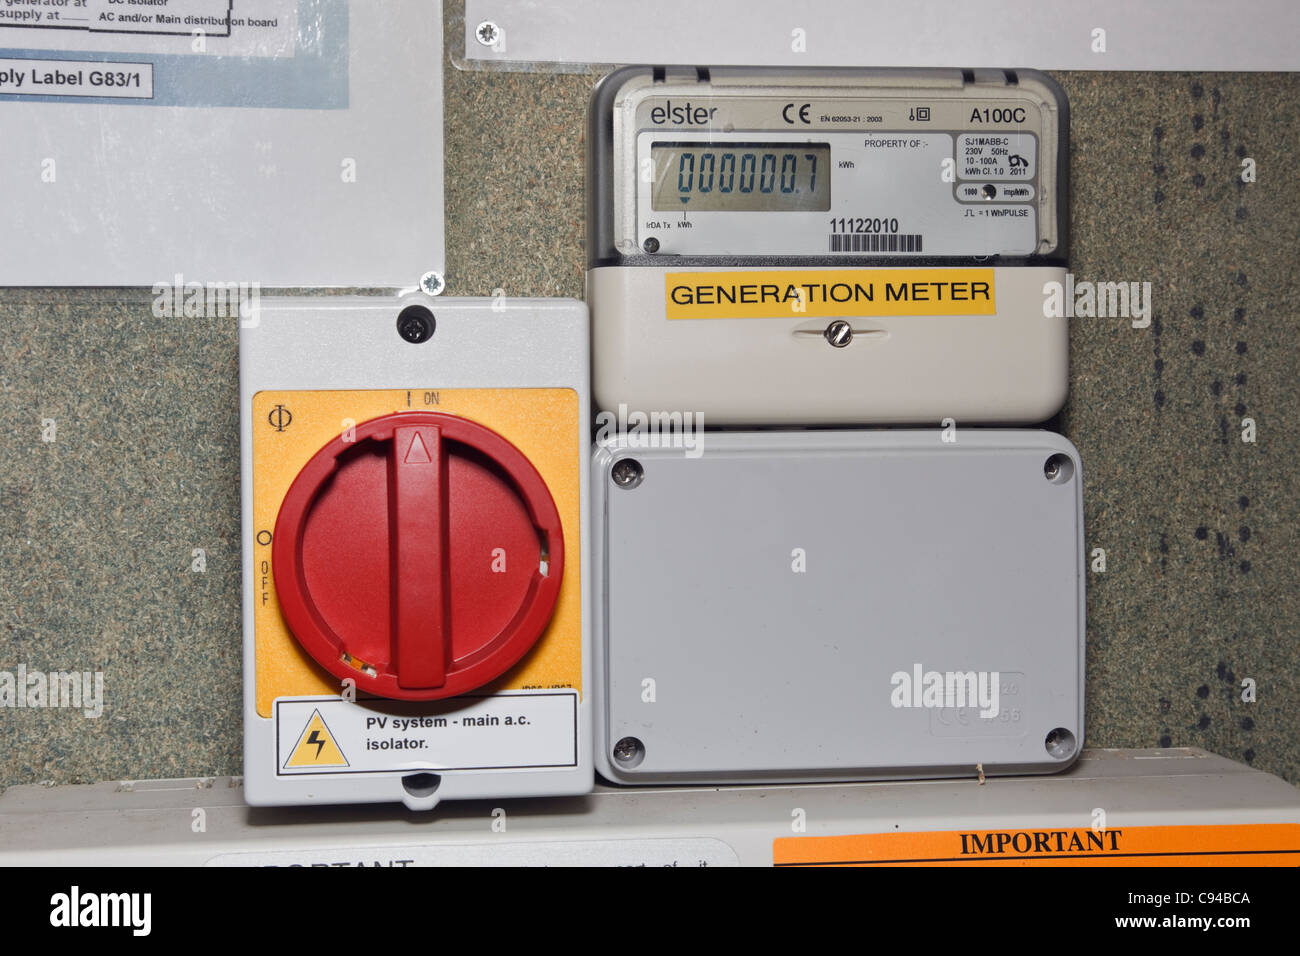 solar pv generation meter wiring diagram 1985 k5 blazer fuse panel array related keywords